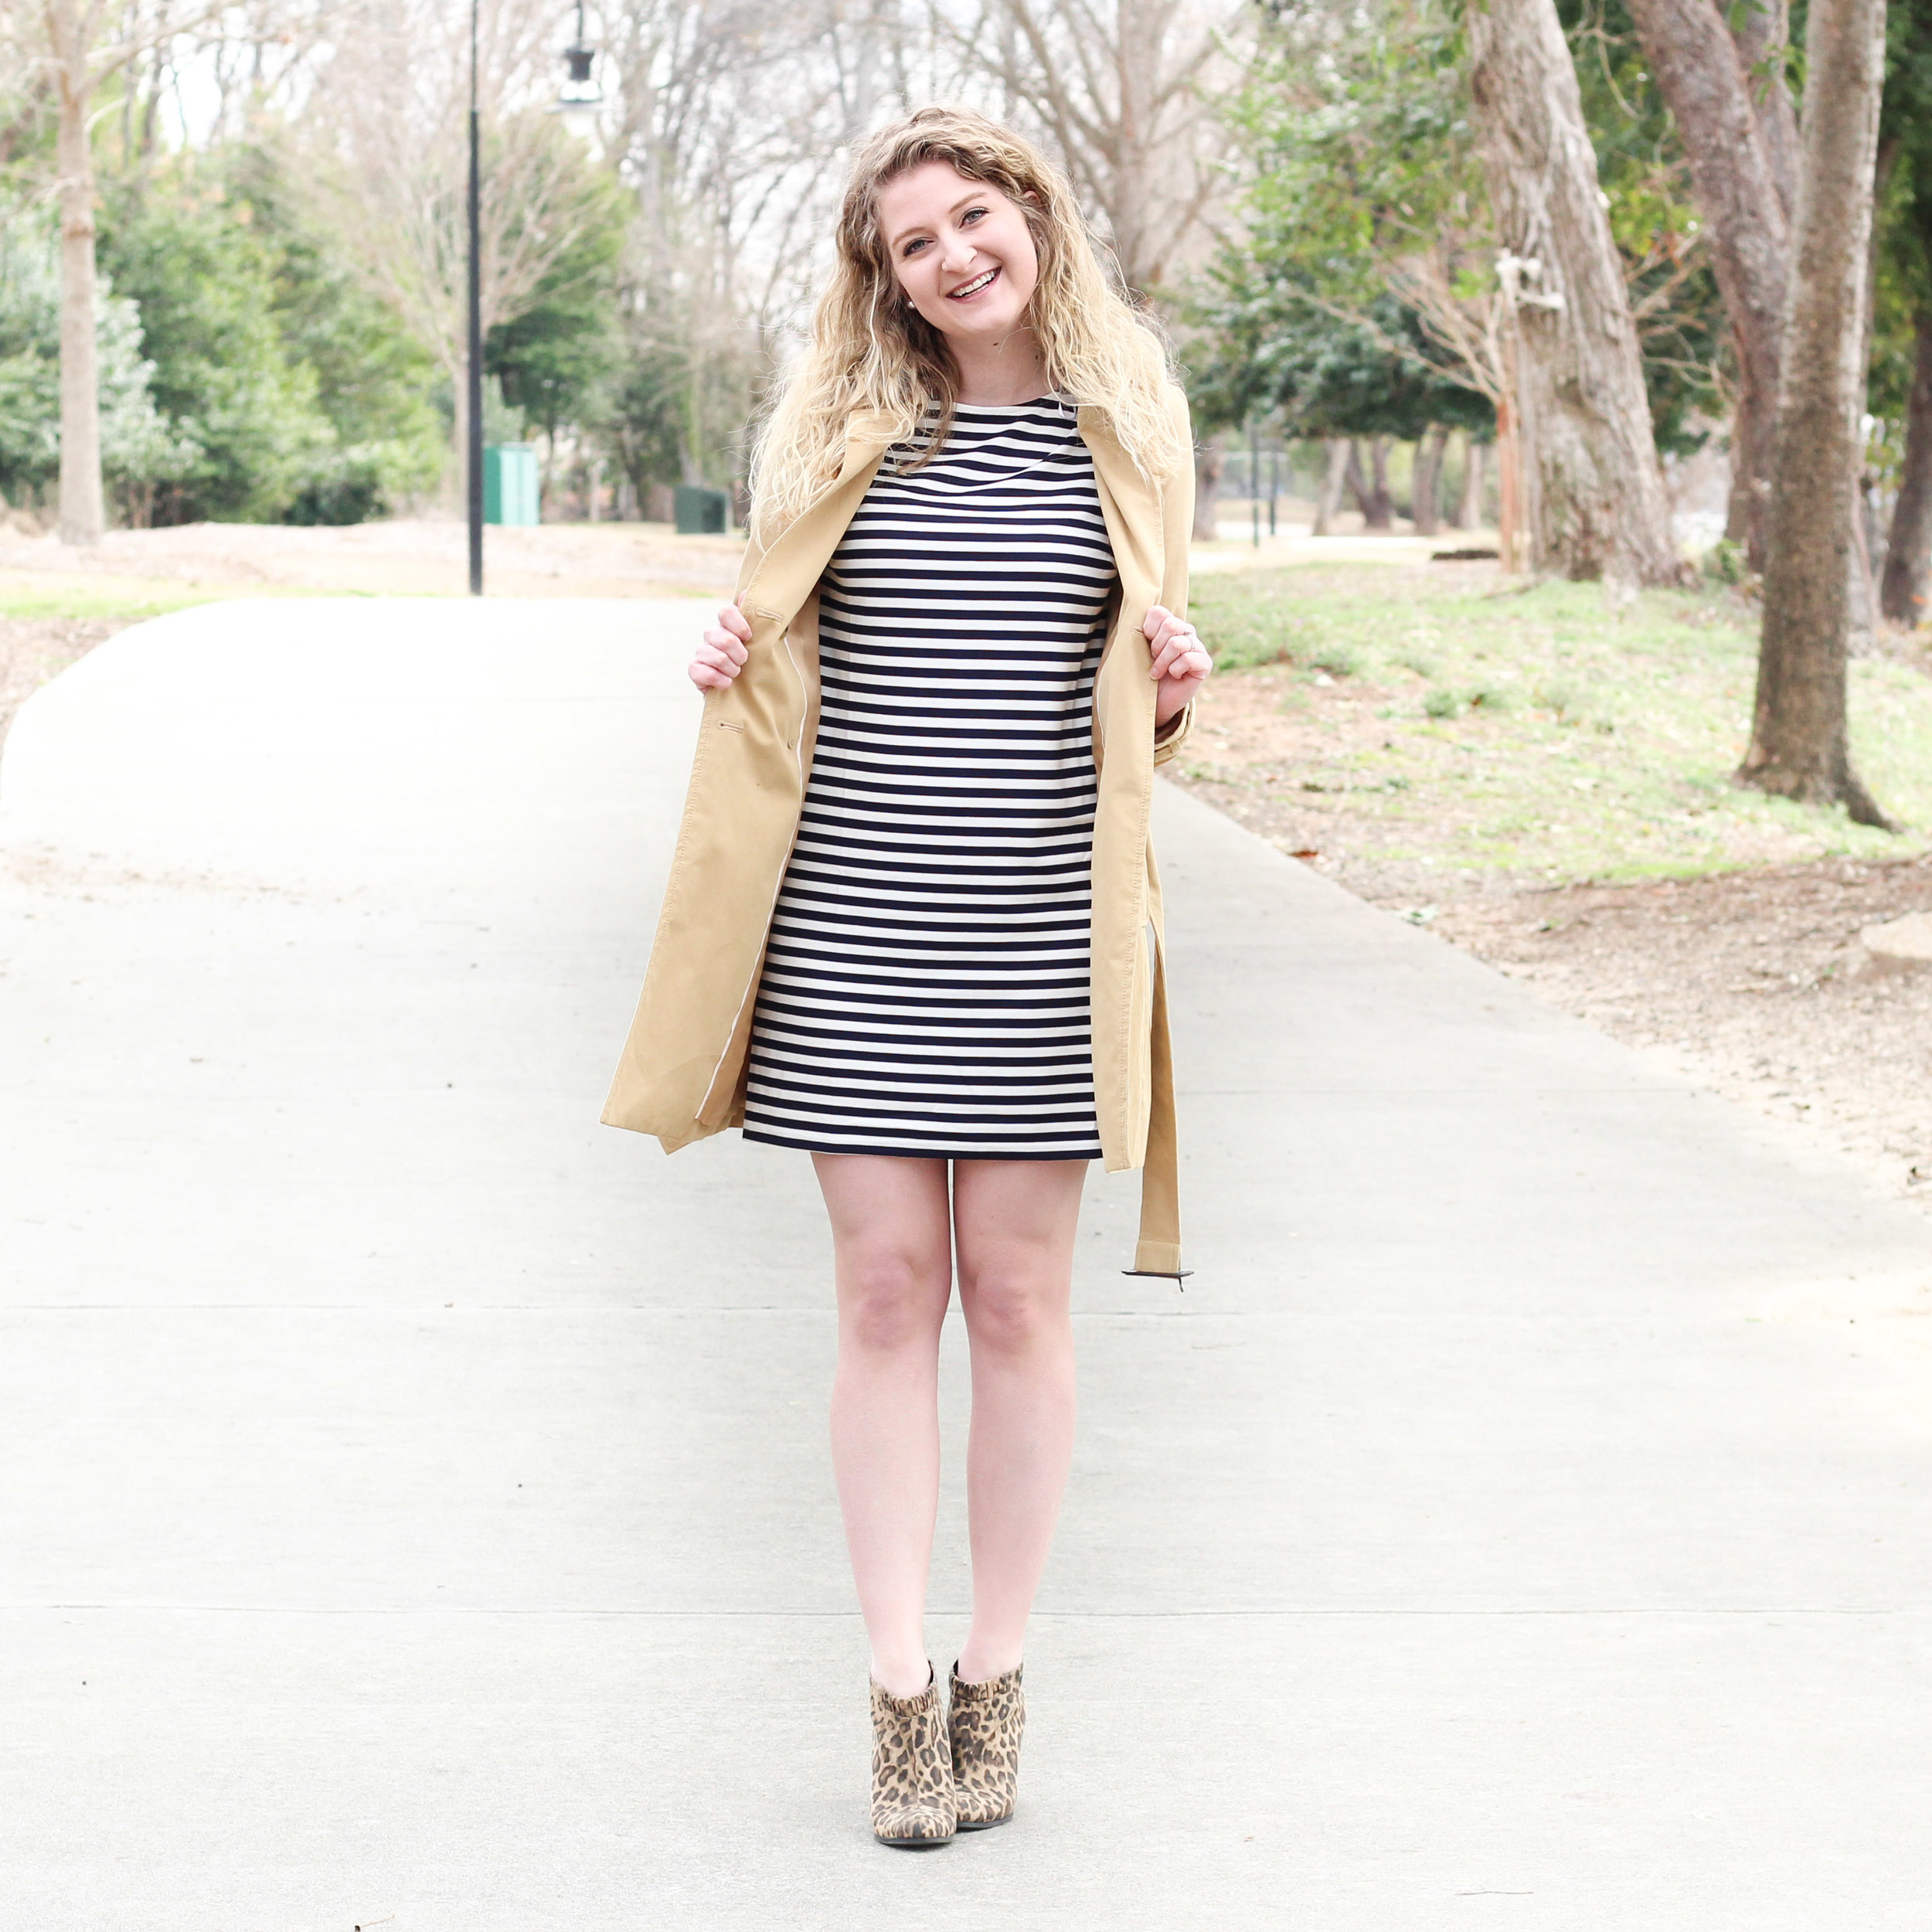 Stripped Dress with Yellow Rain Jacket